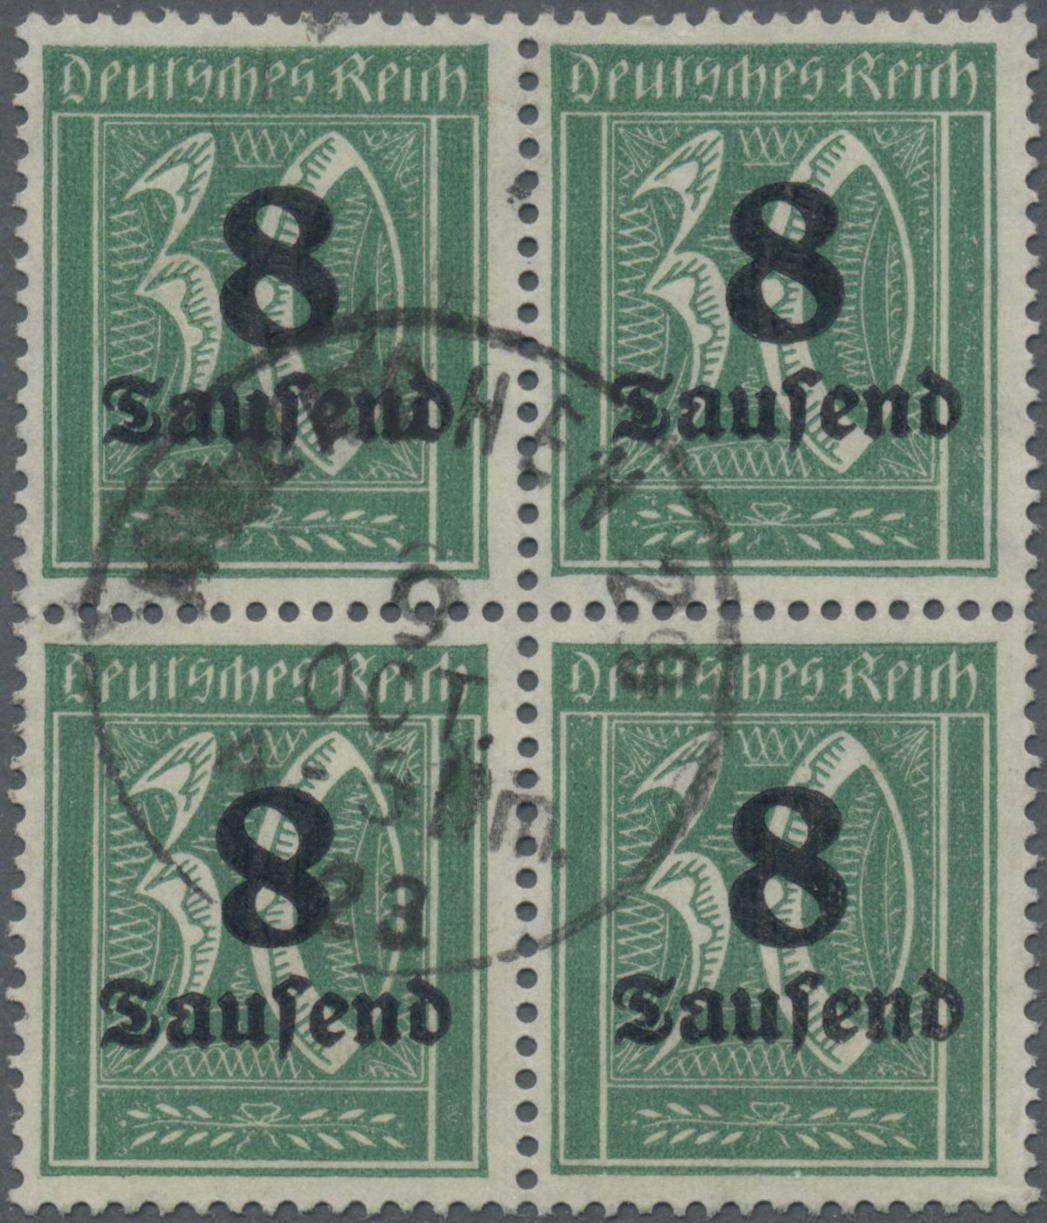 Lot 36610 - Deutsches Reich - Inflation  -  Auktionshaus Christoph Gärtner GmbH & Co. KG Sale #44 Collections Germany